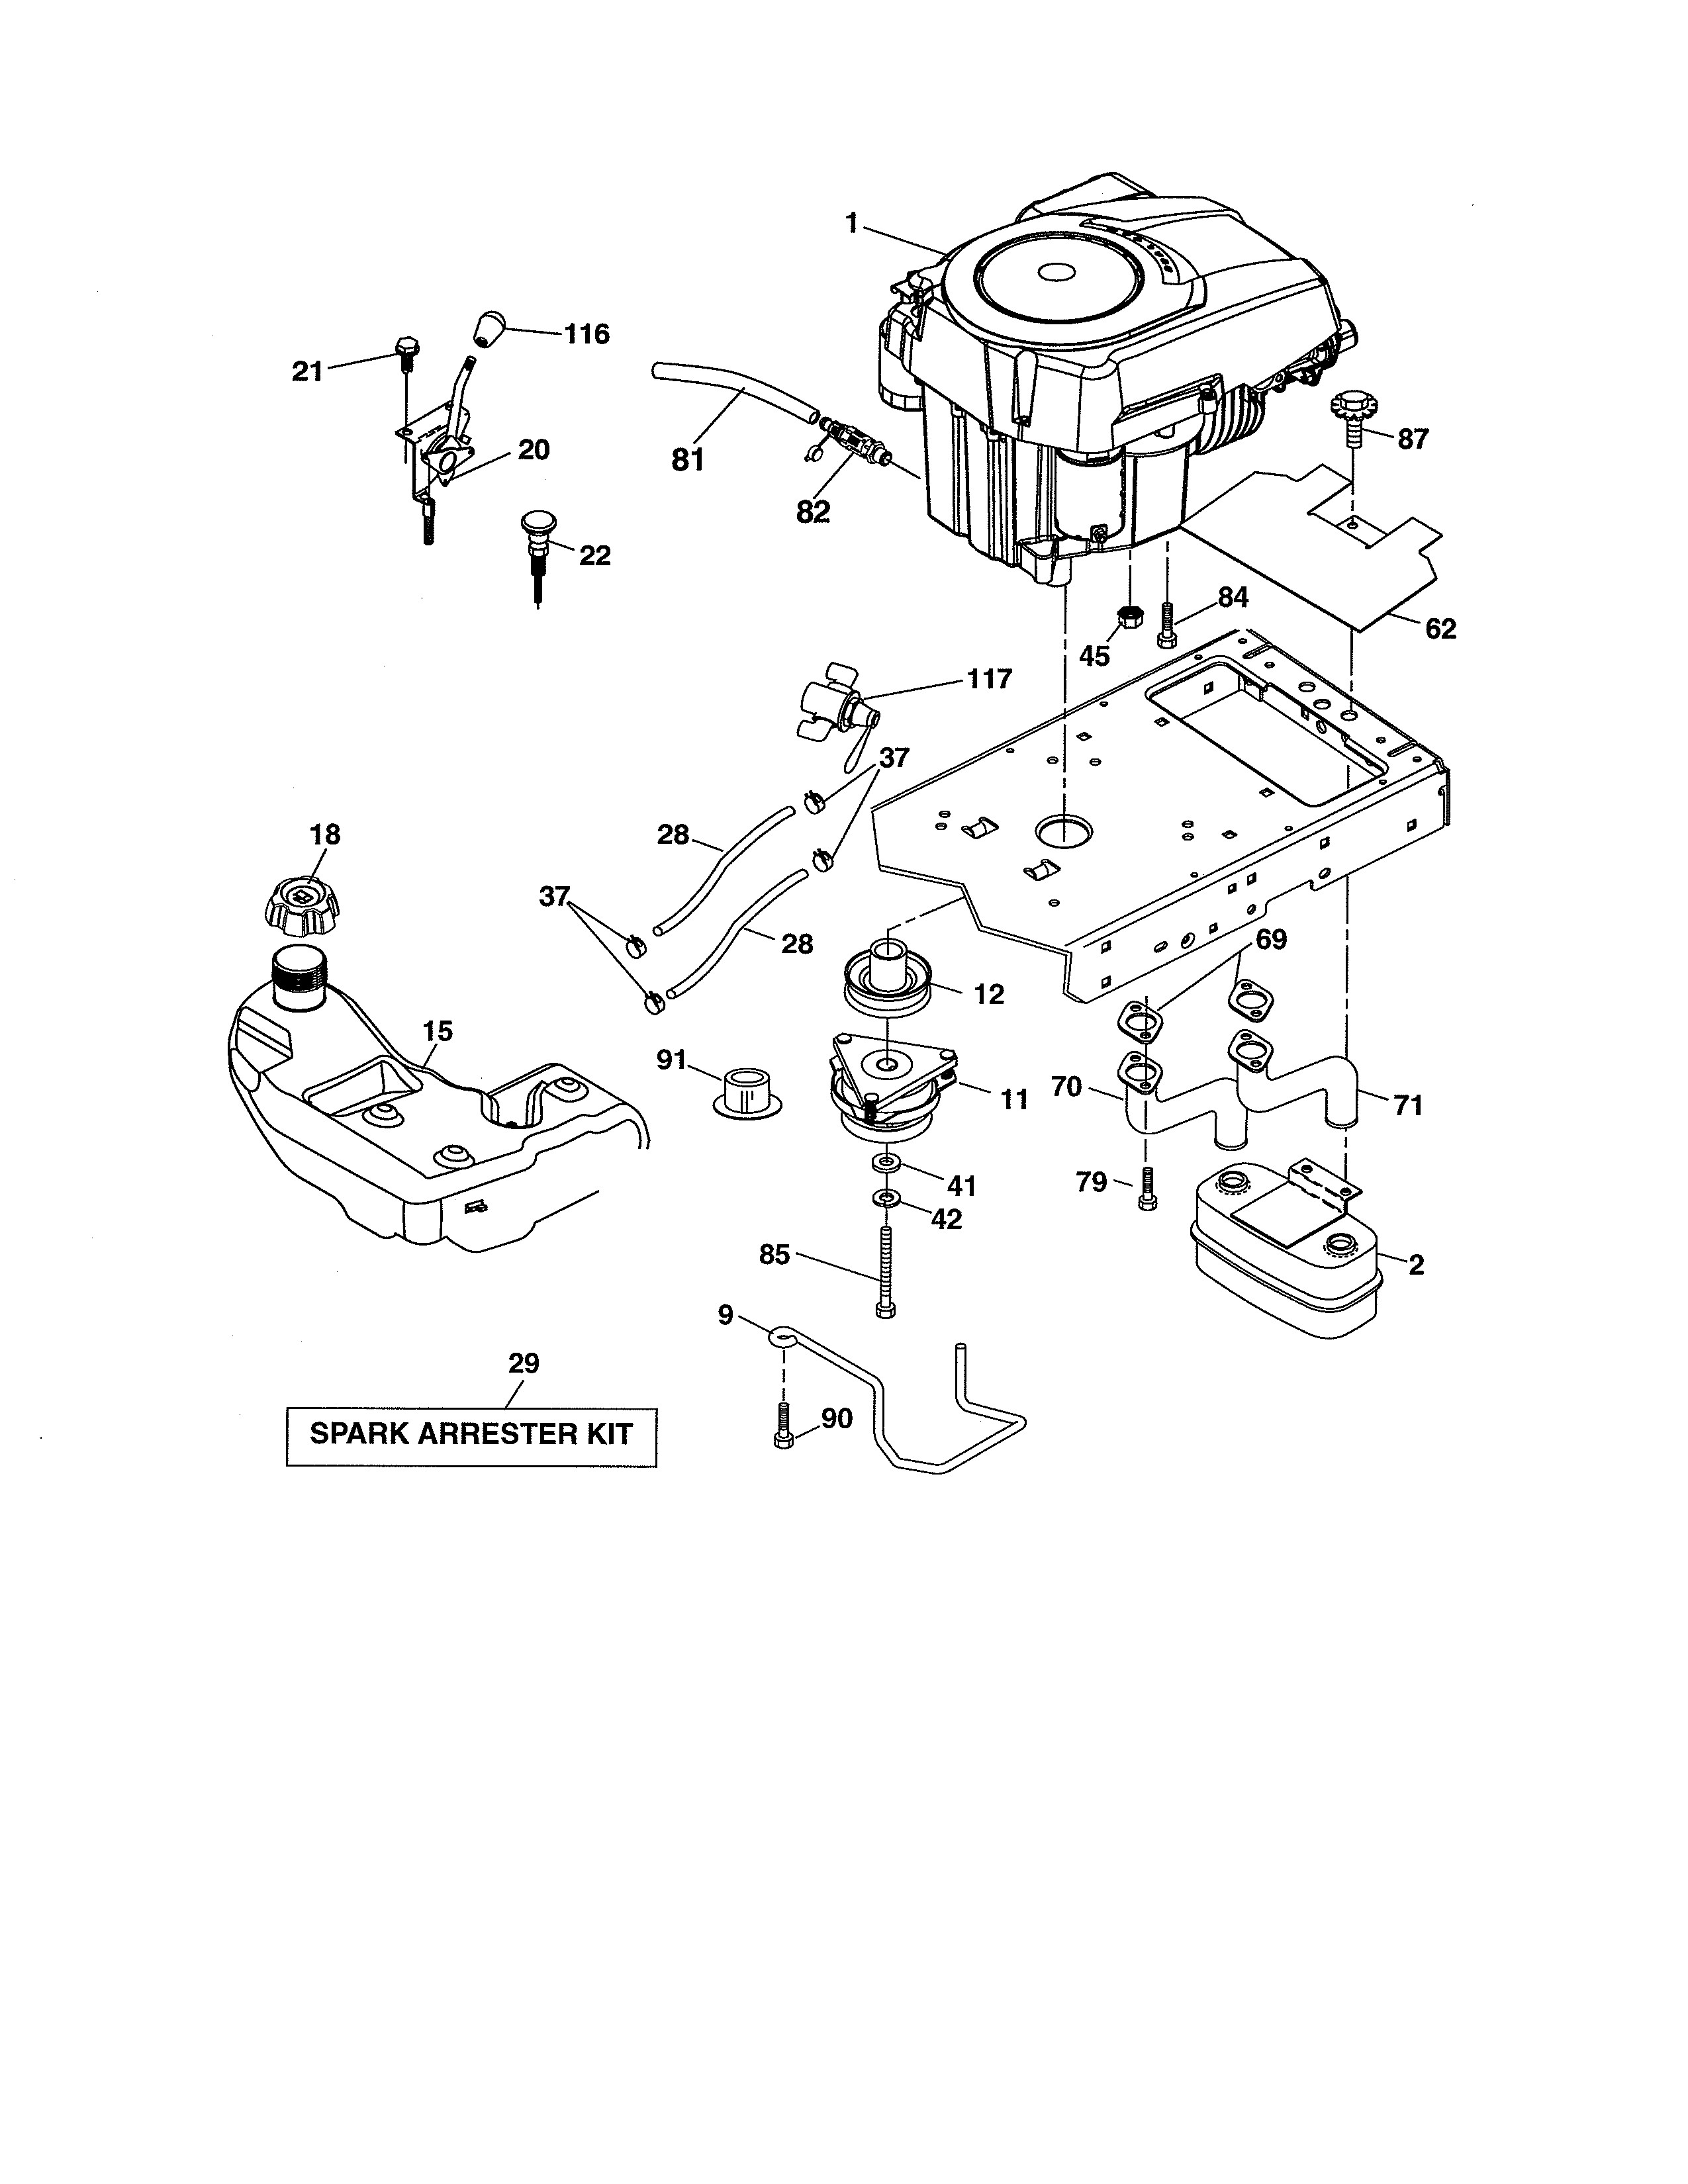 Craftsman Leaf Blower Wiring Diagram Library Parts Model Lawn Tractor Genuine